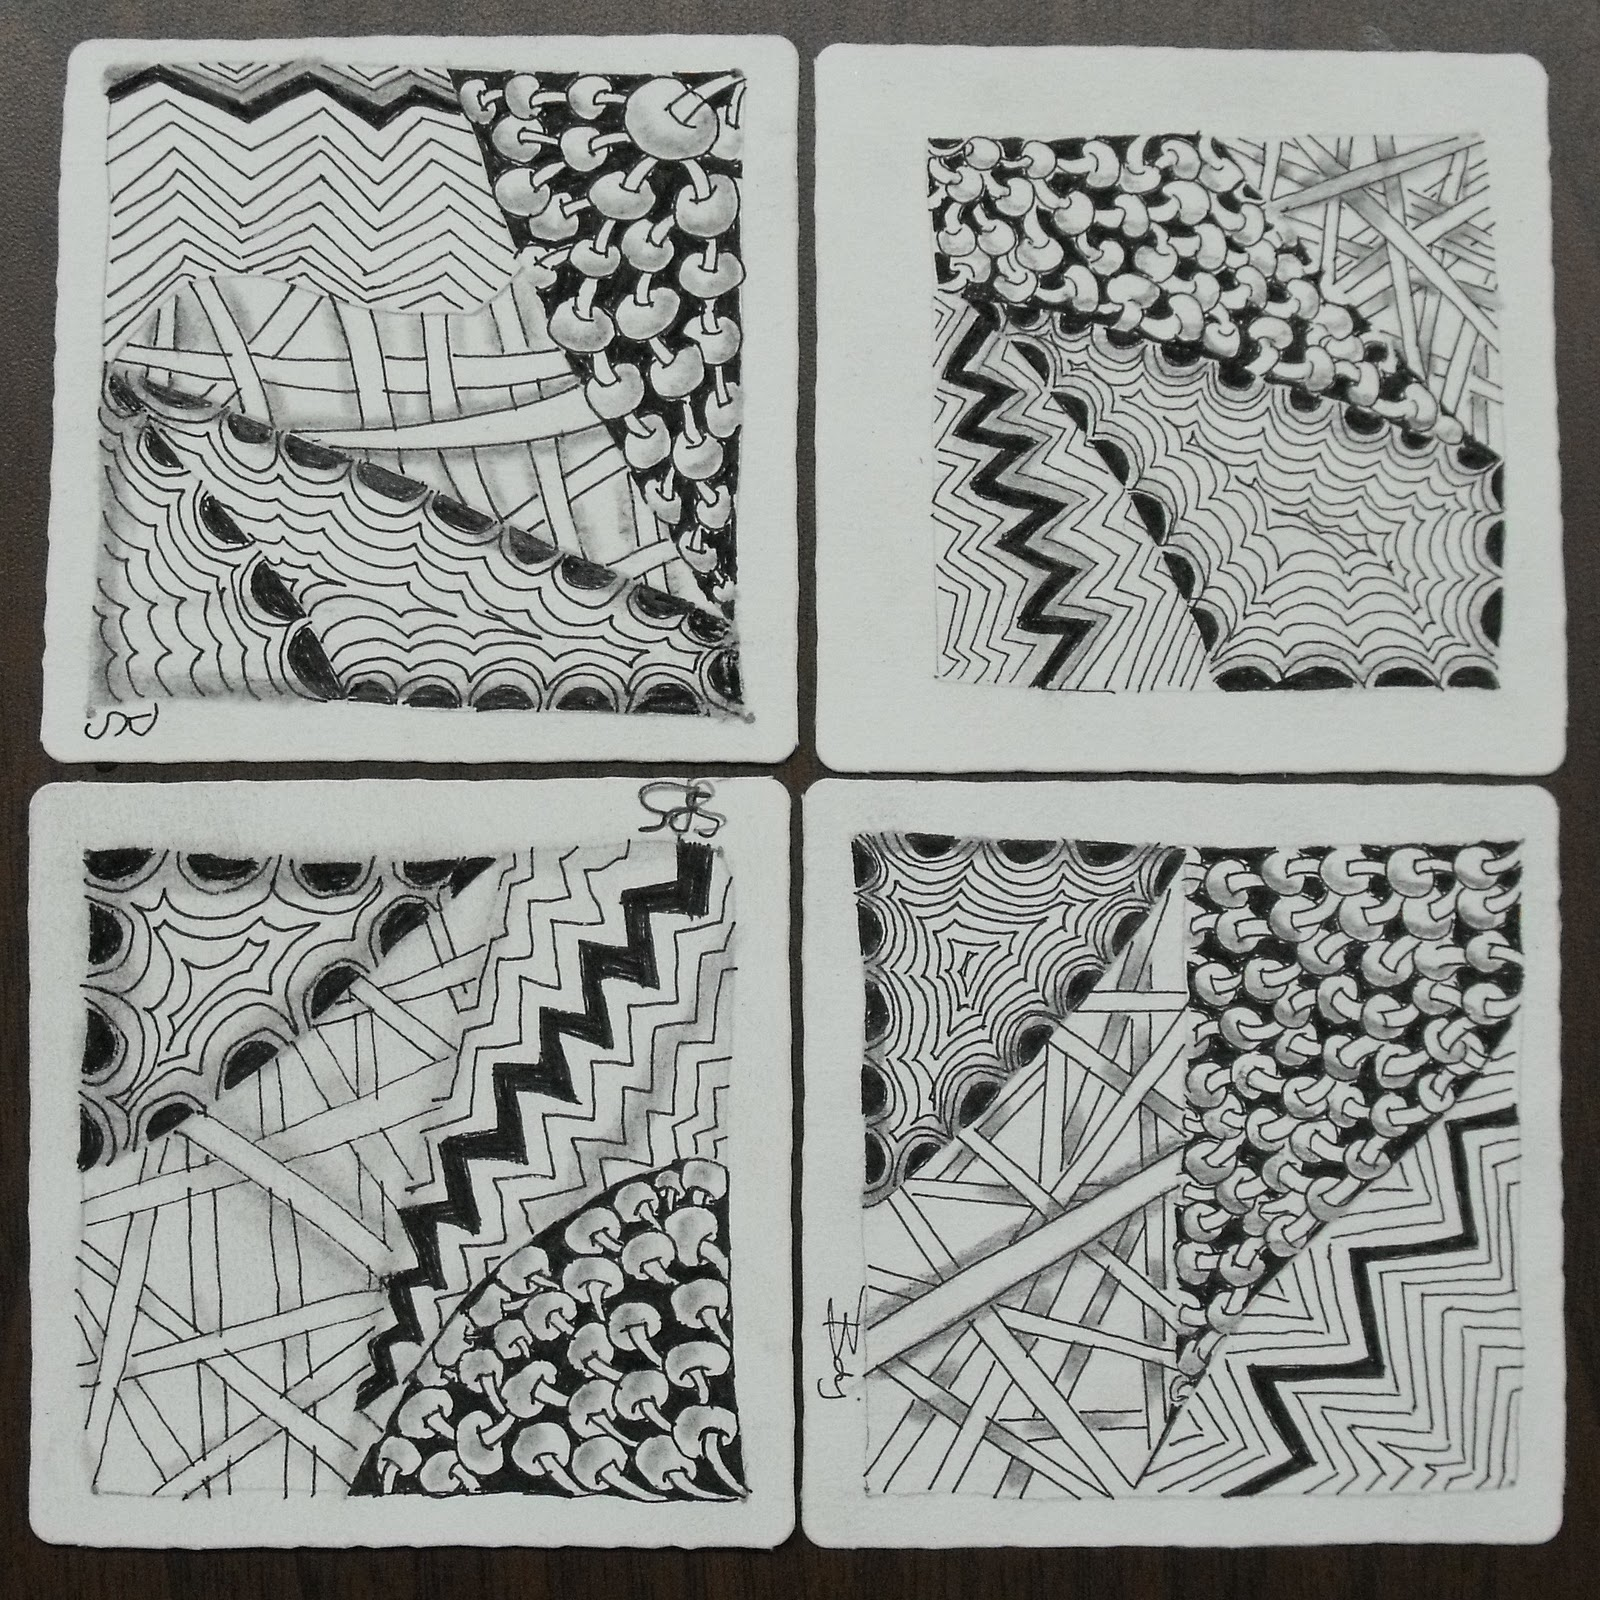 zentangle tile template - in rosie 39 s book zentangle tiles from introductory class